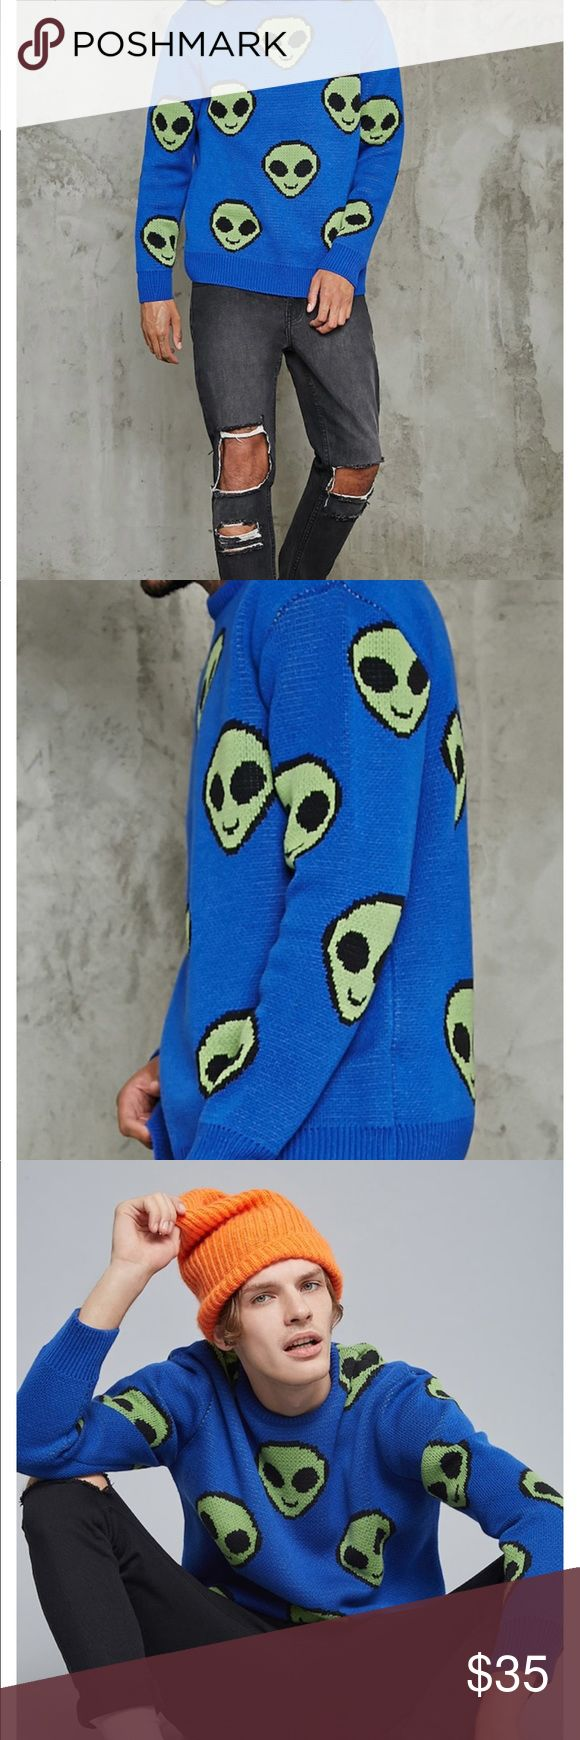 Alien Sweatshirt Oversized Urban Jumper New, without tag! Label is Forever 21, sized a men's Large - would be a OSFA for women or juniors. This sweater is totally rad, but a little too warm for California summer. Urban Outfitters Sweaters